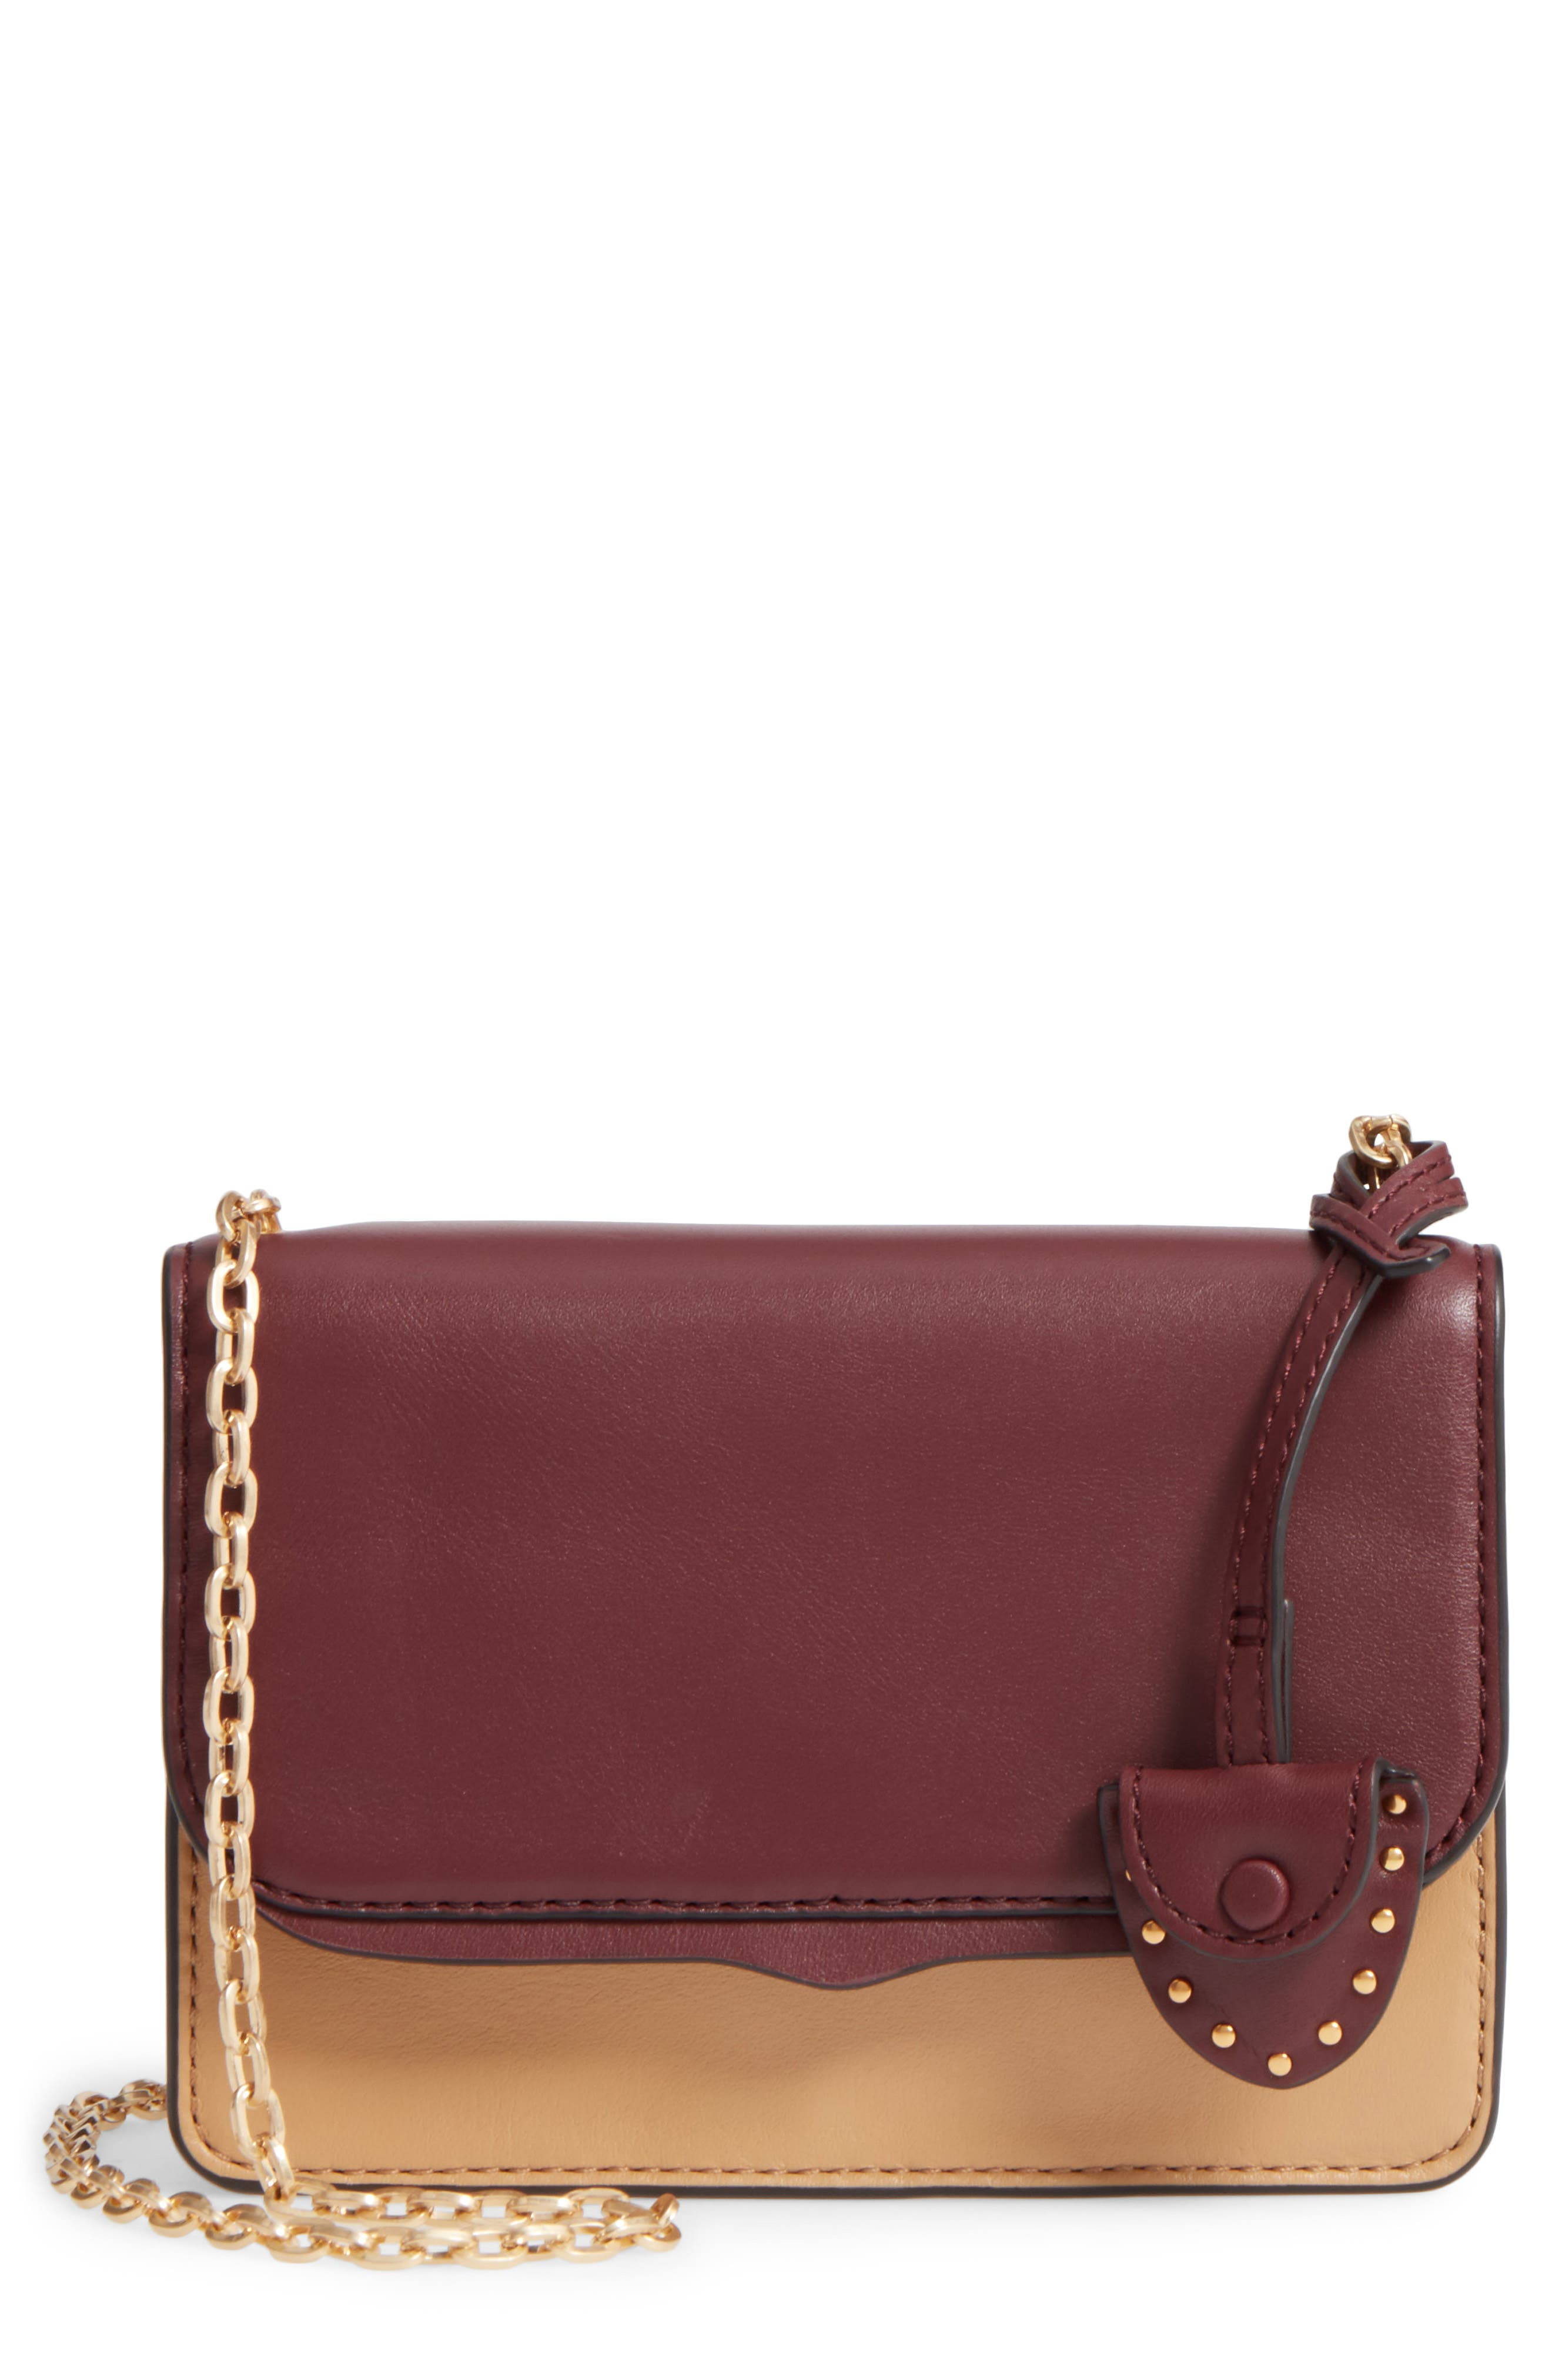 Rebecca Minkoff Mini Chain Leather Crossbody Bag